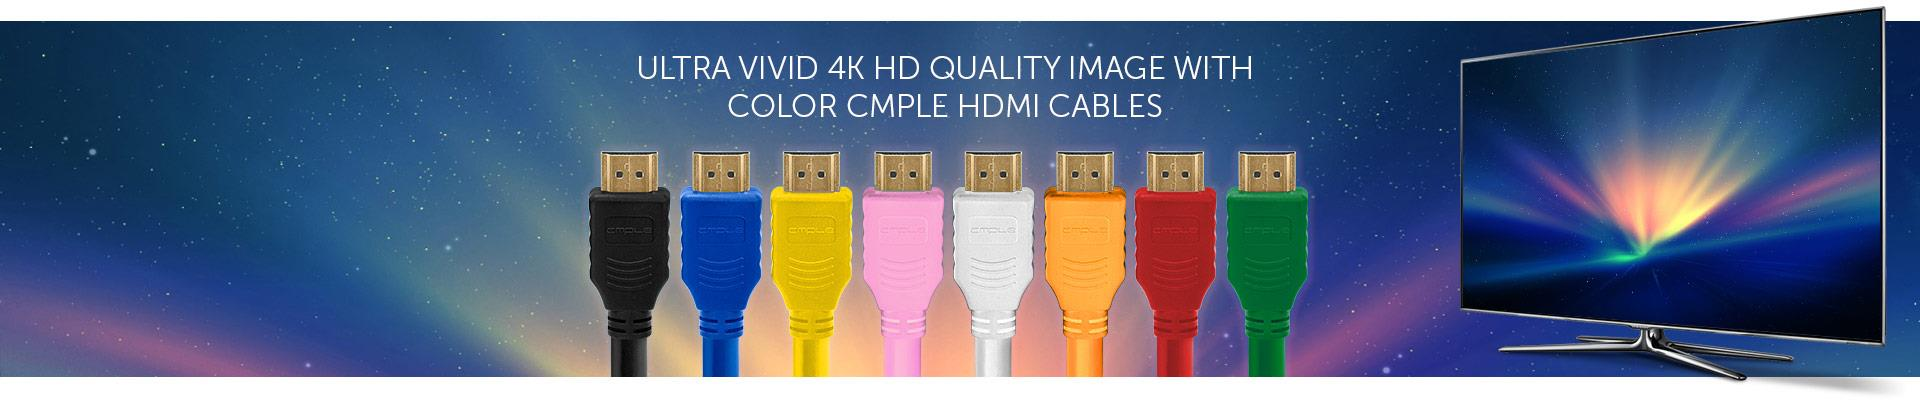 Hdmi Cables High Speed Cmple